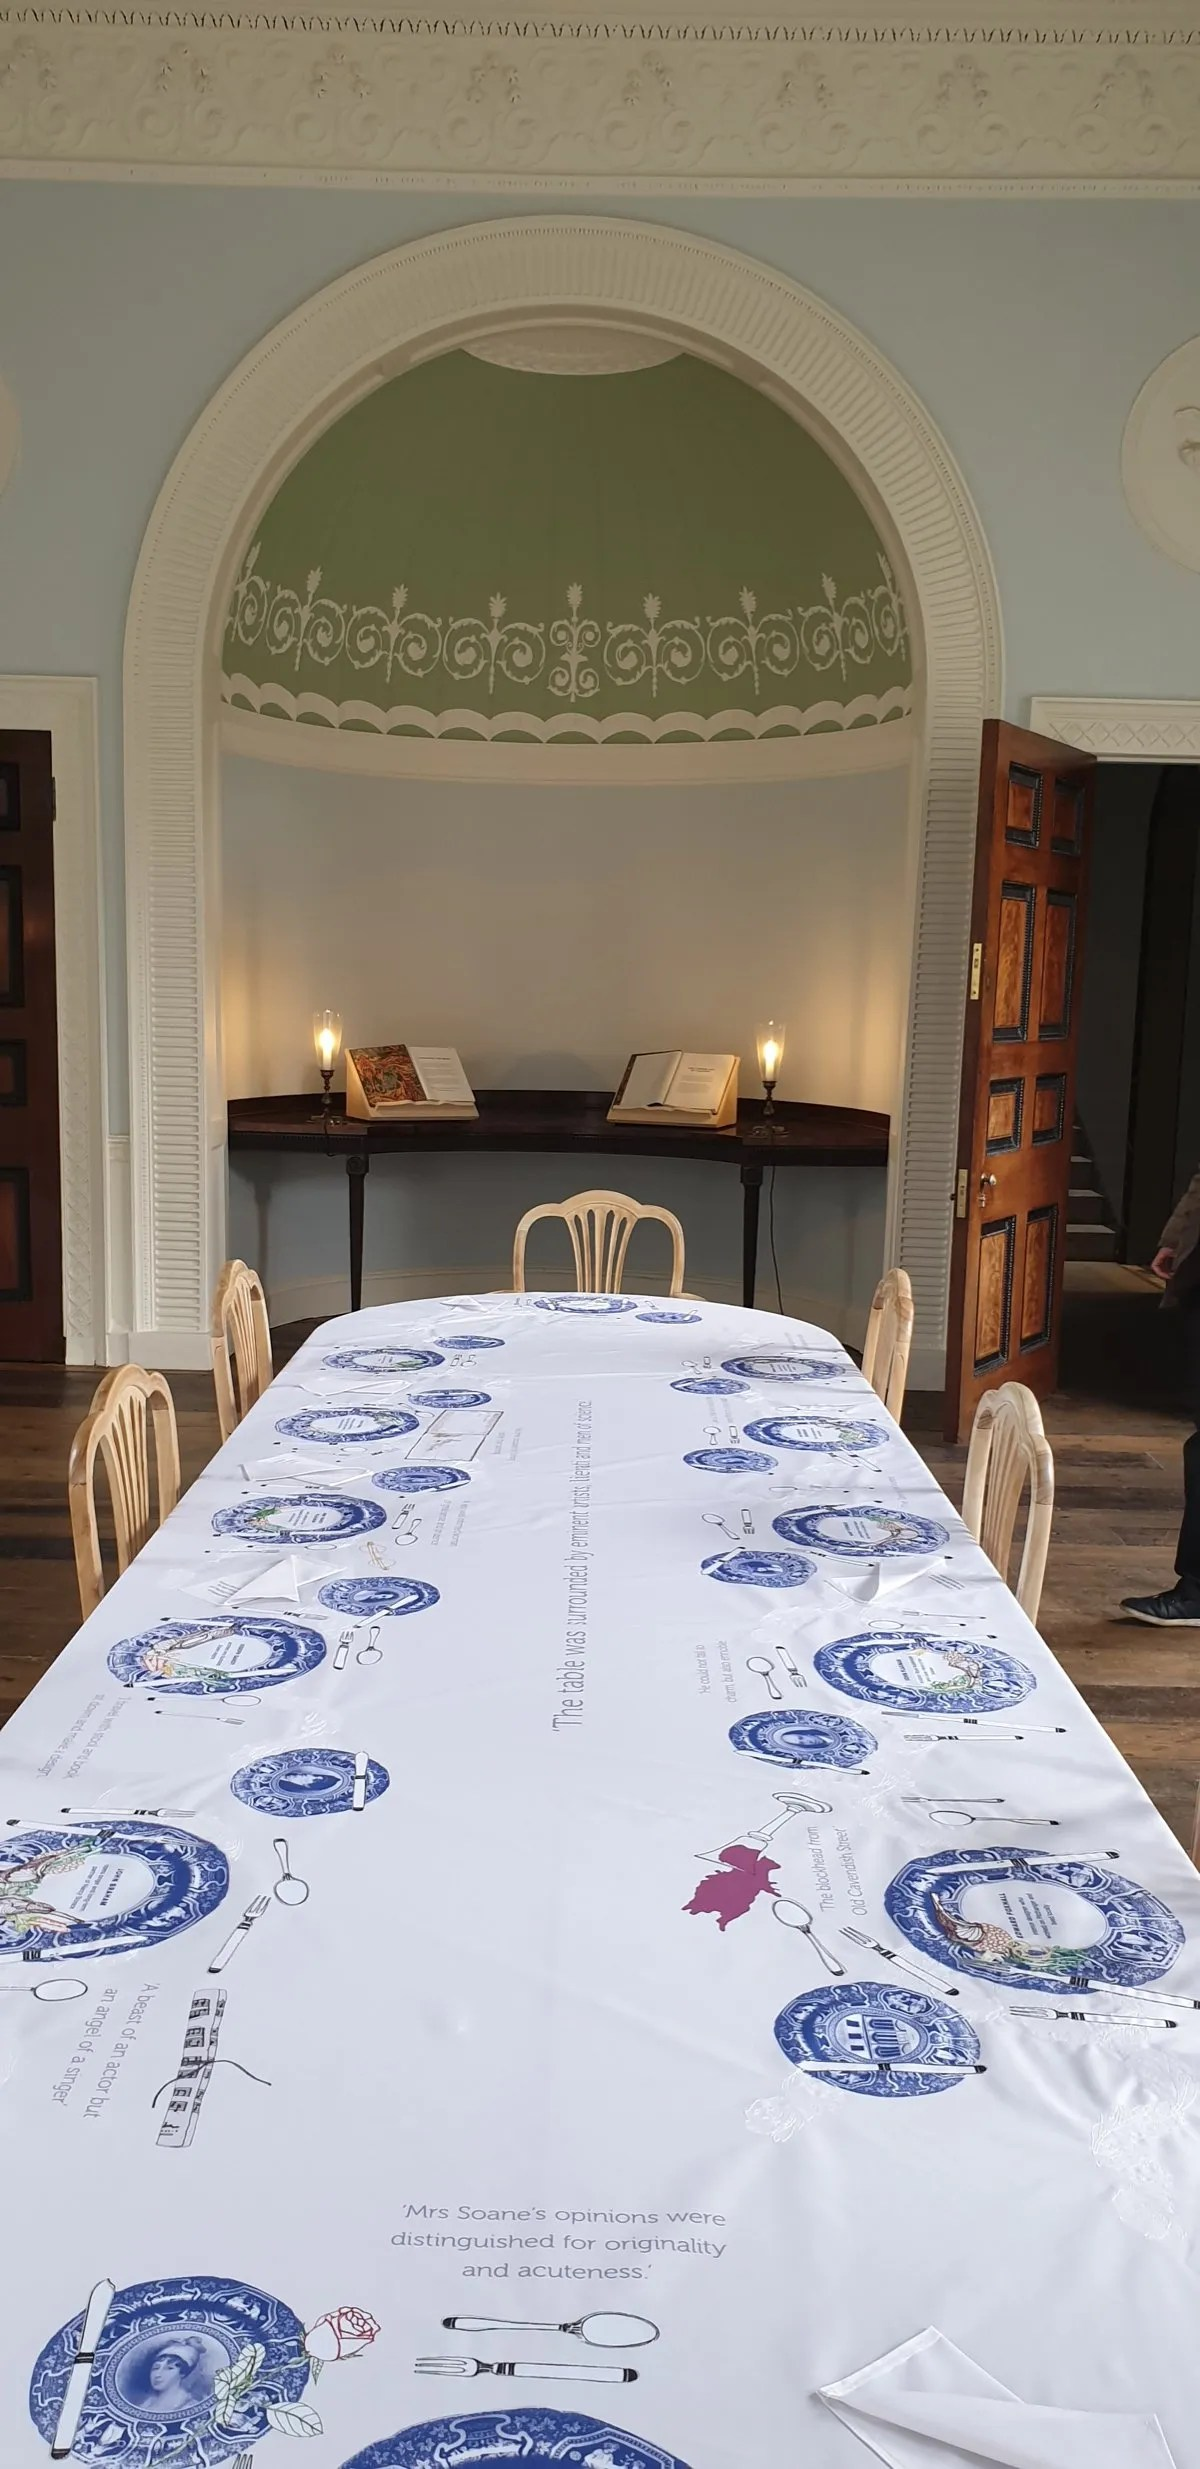 Long dining table in Neo classical John Soane room